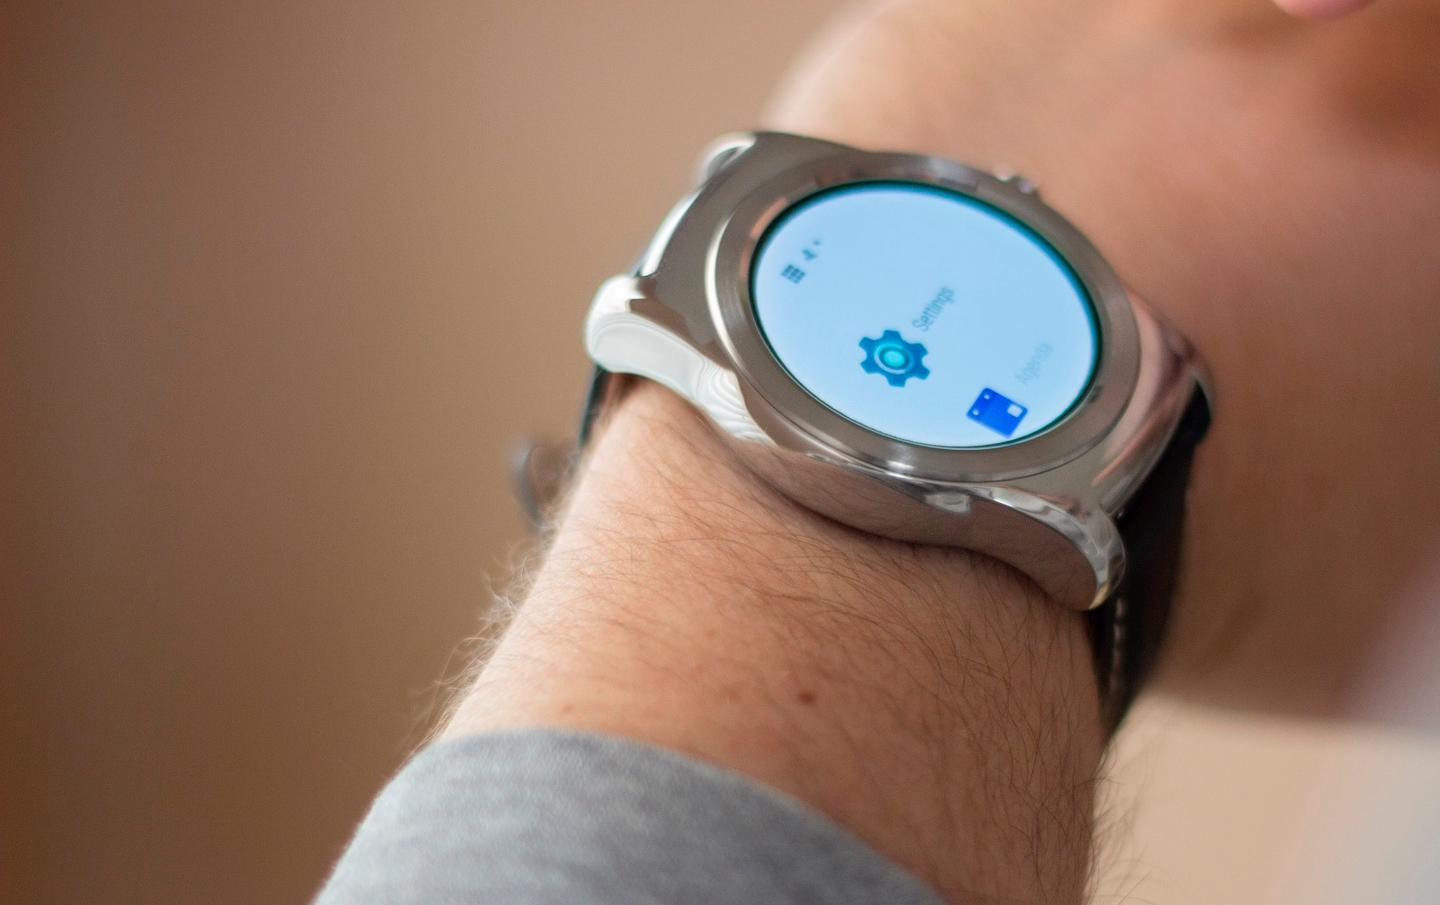 The new easy access apps list on the LG Watch Urbane (Photo: Will Shanklin/Gizmag.com)